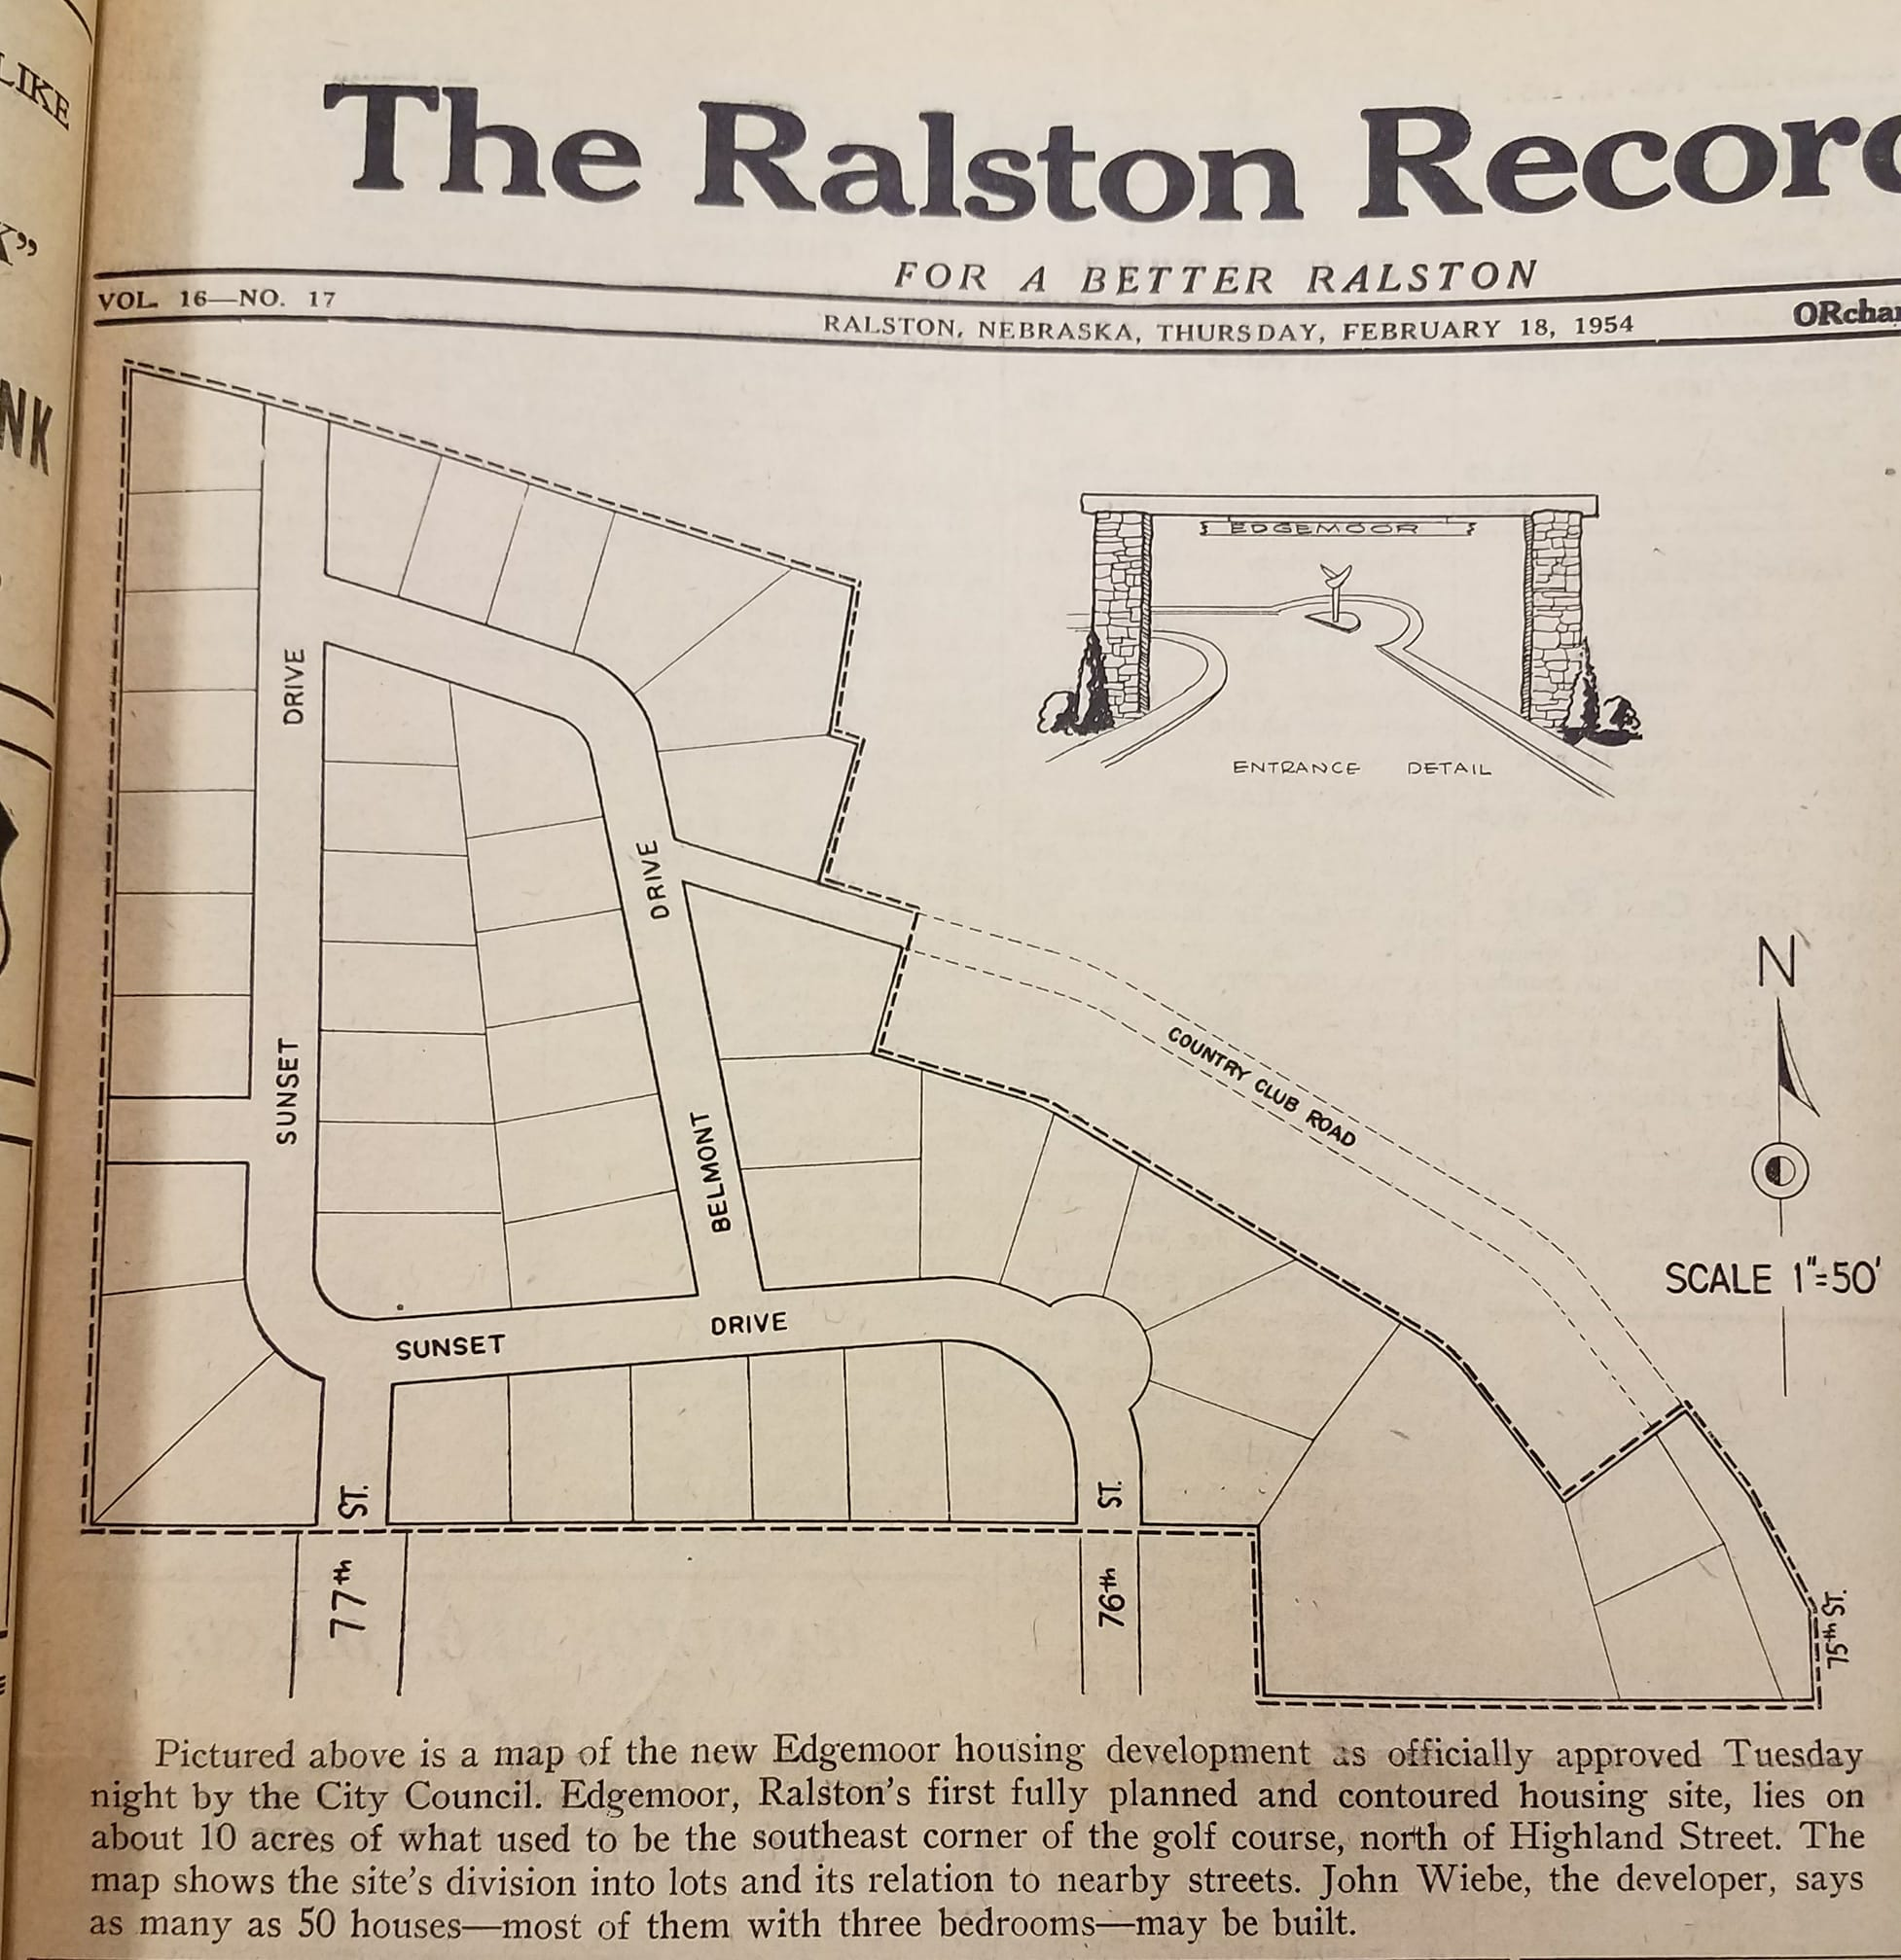 The front page of the Feb. 18, 1954, issue of The Ralston Recorder discusses the Edgemoor housing development. (Frank and Velma Johnson Ralston Archives Museum)